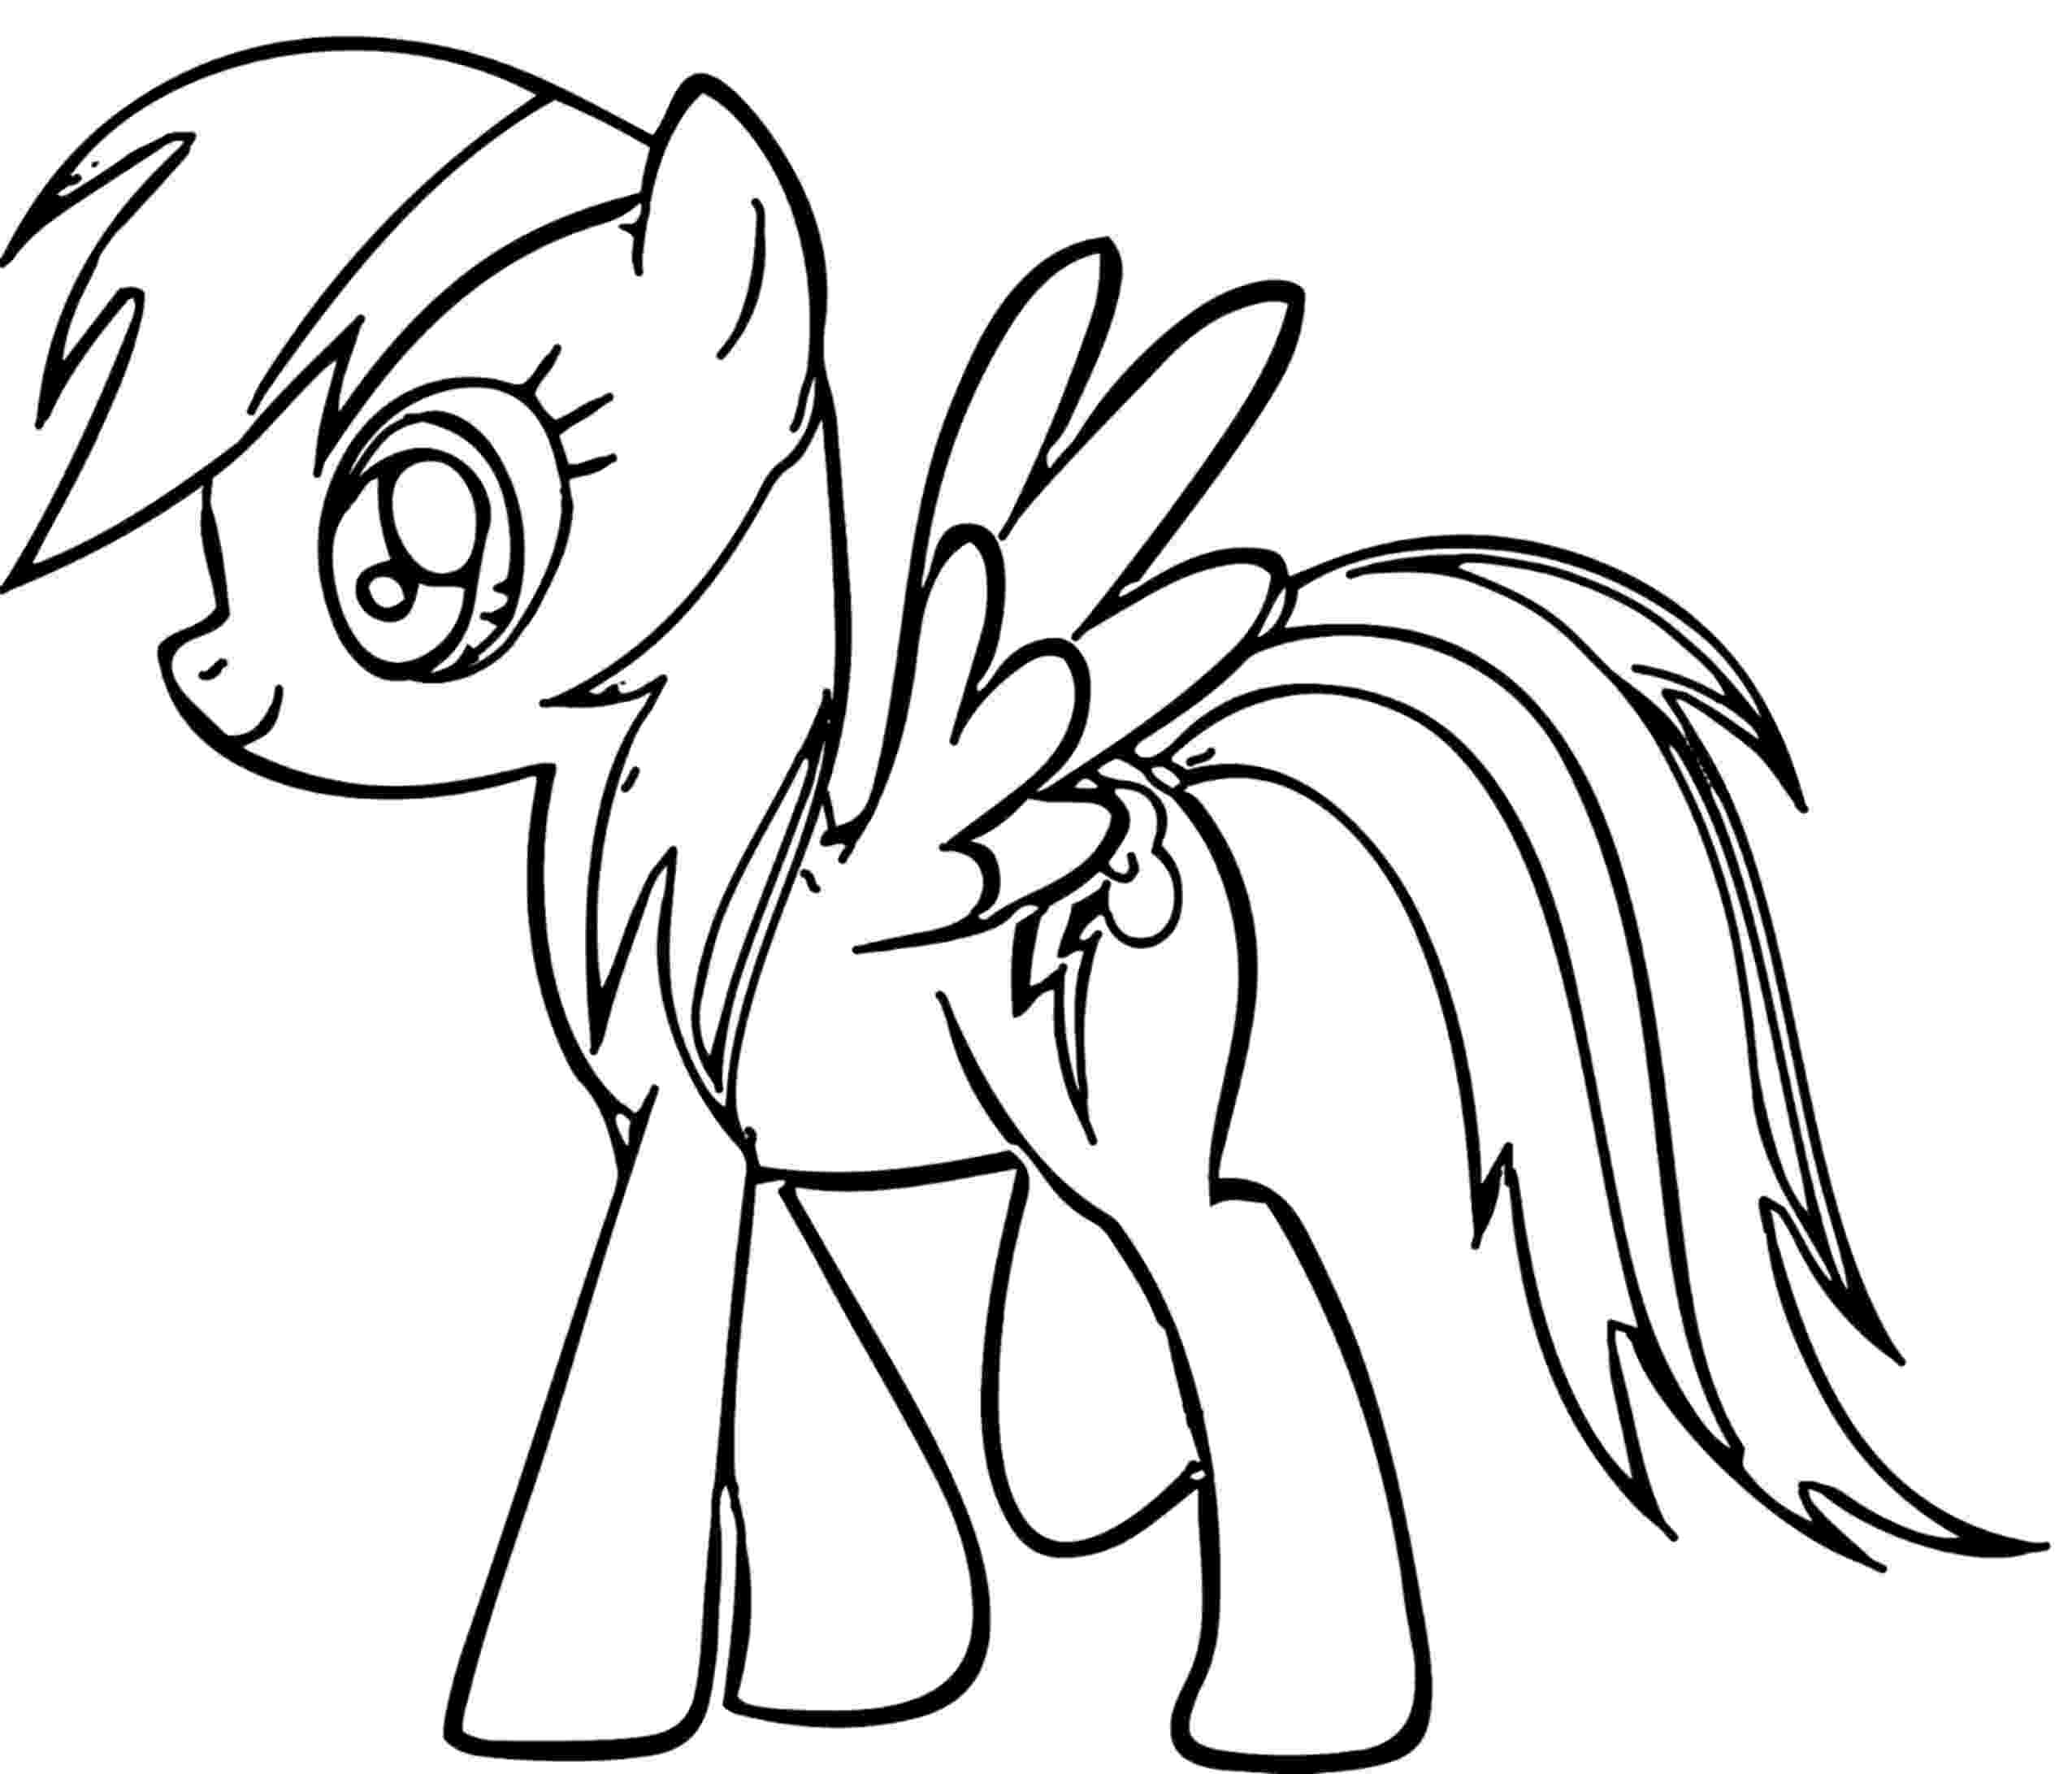 rainbow dash pictures to color rainbow dash coloring page free download on clipartmag dash to pictures color rainbow